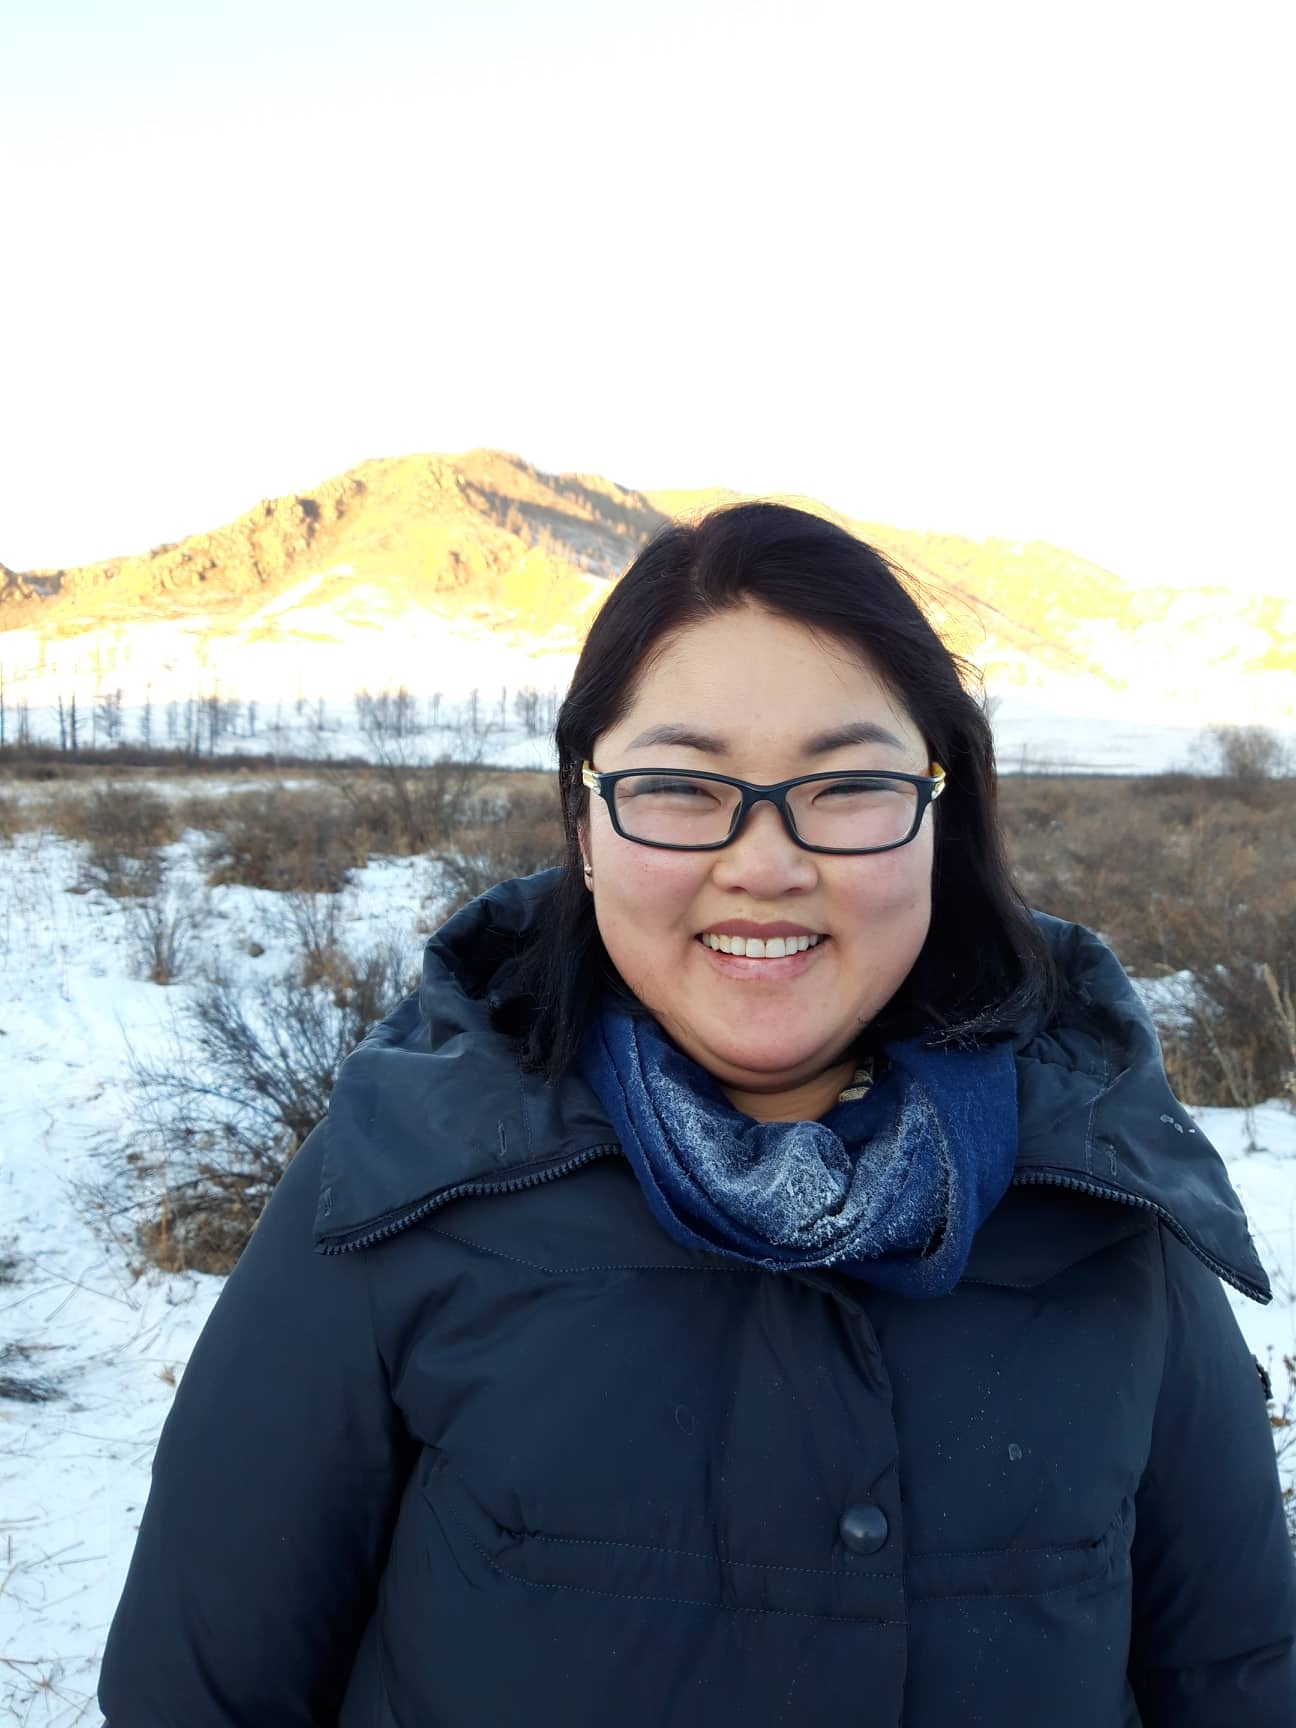 TSATSAA  is camp manager at Eg River EMT Lodge. She has managed the camp since it was built in 2010. She has served many private guests from abroad and vips from Mongolia. She is also an excellent cook of traditional Mongolian dishes.